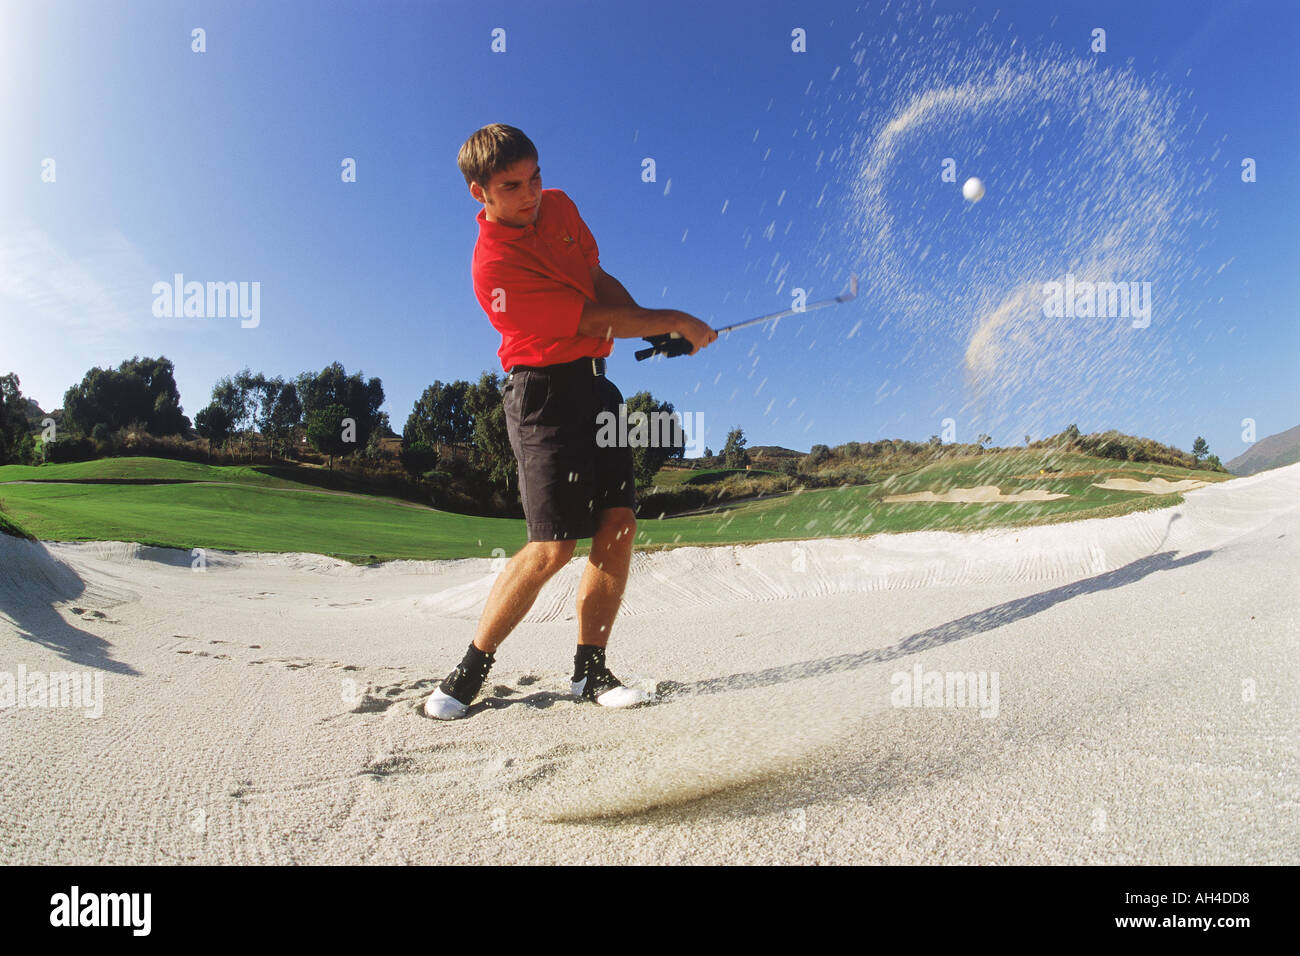 Halo of sand encircliing golf ball hit from bunker on Costa Del Sol course in Spain - Stock Image